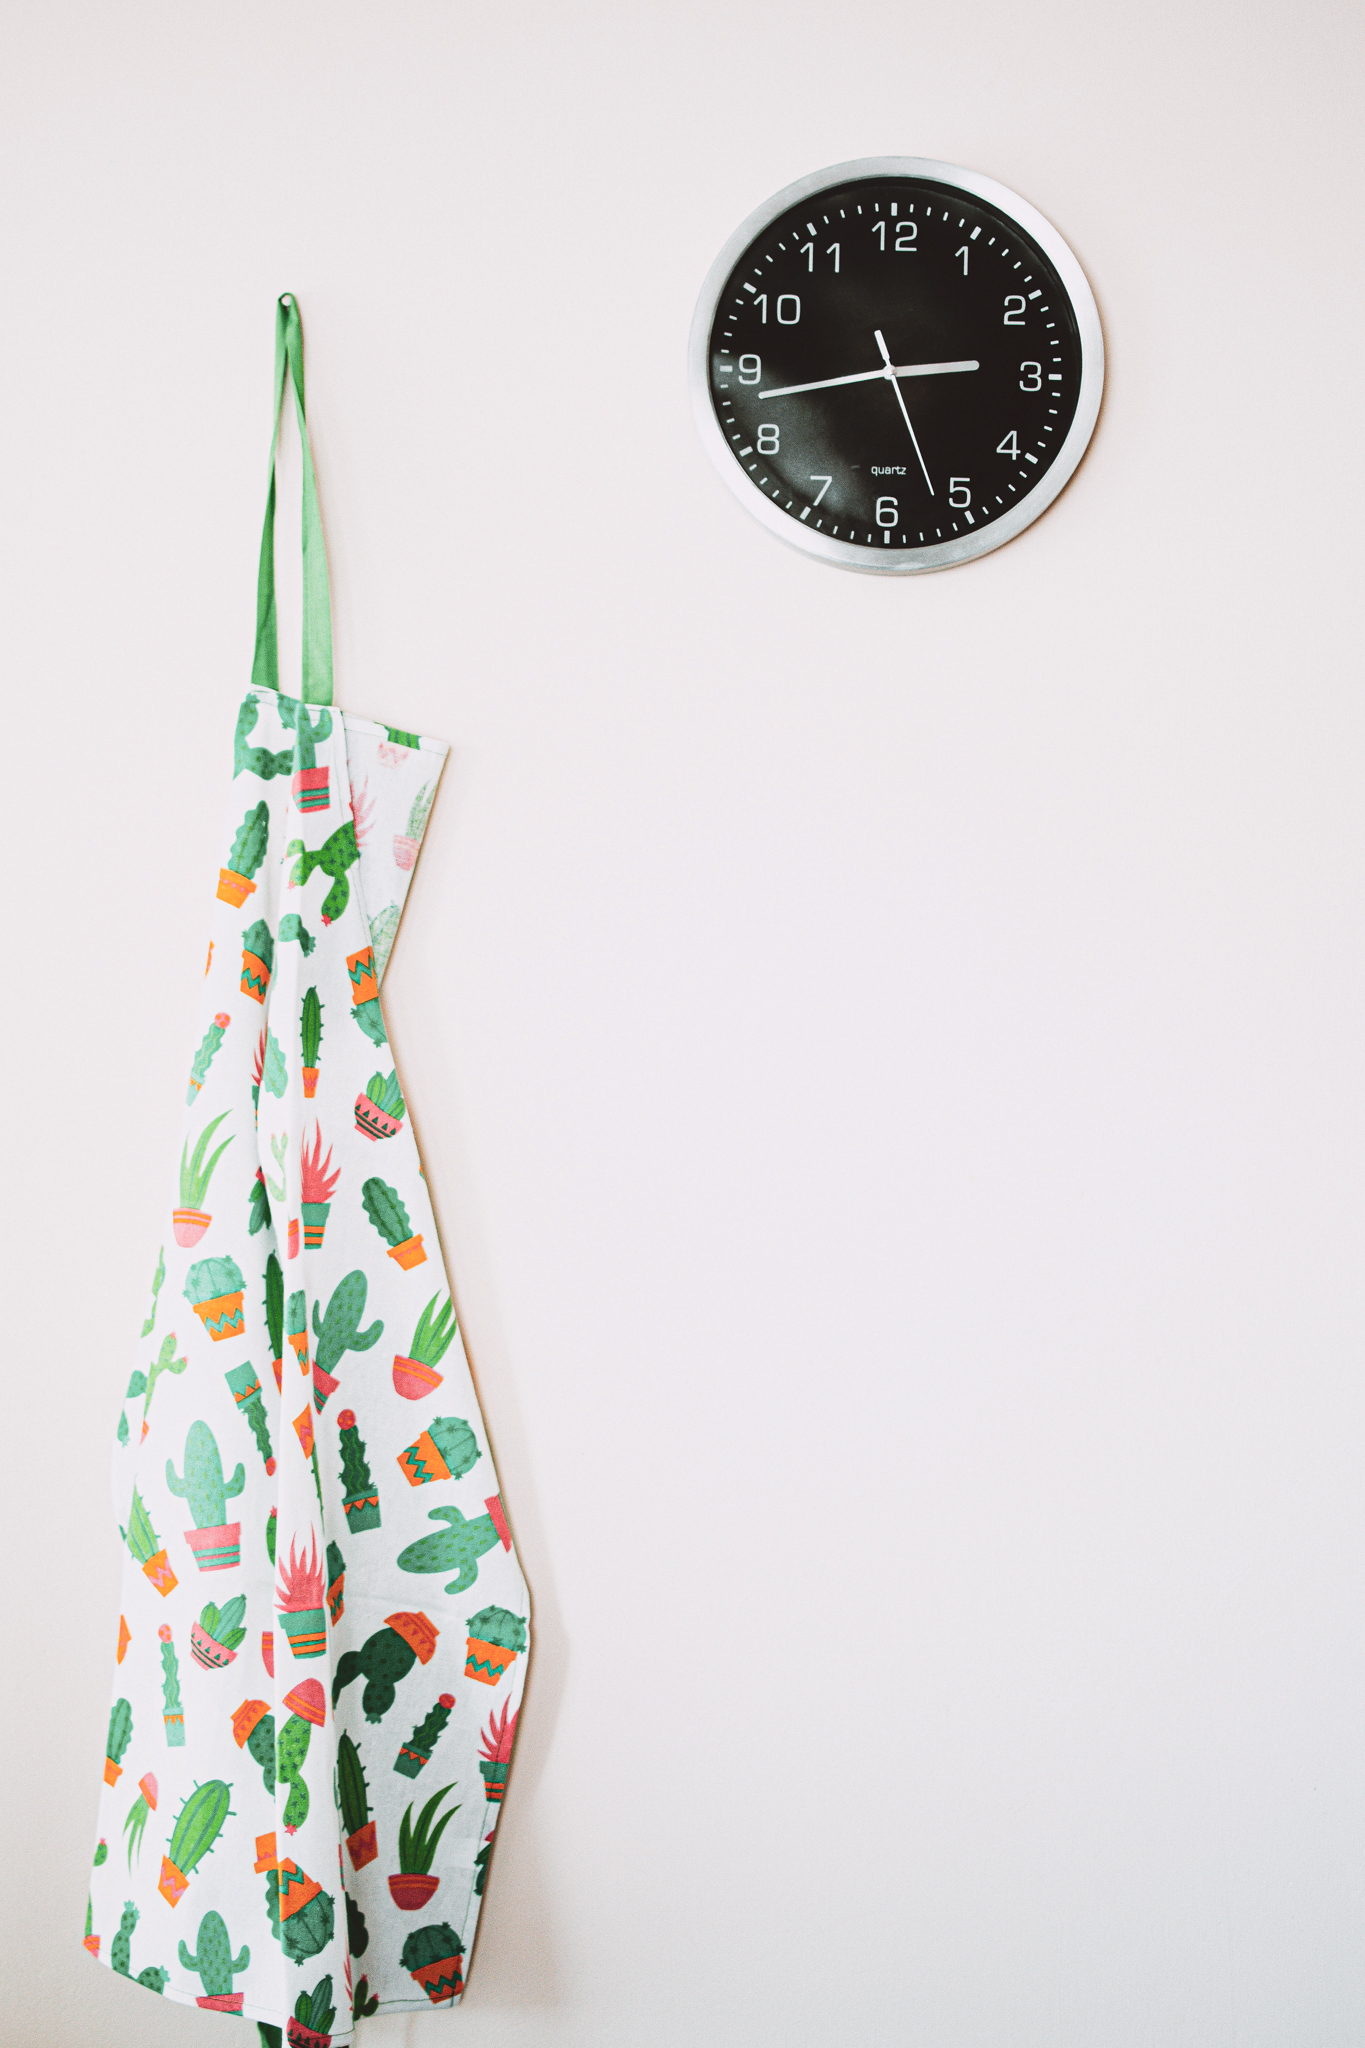 white-and-green-cactus-pattern-apron-near-clock